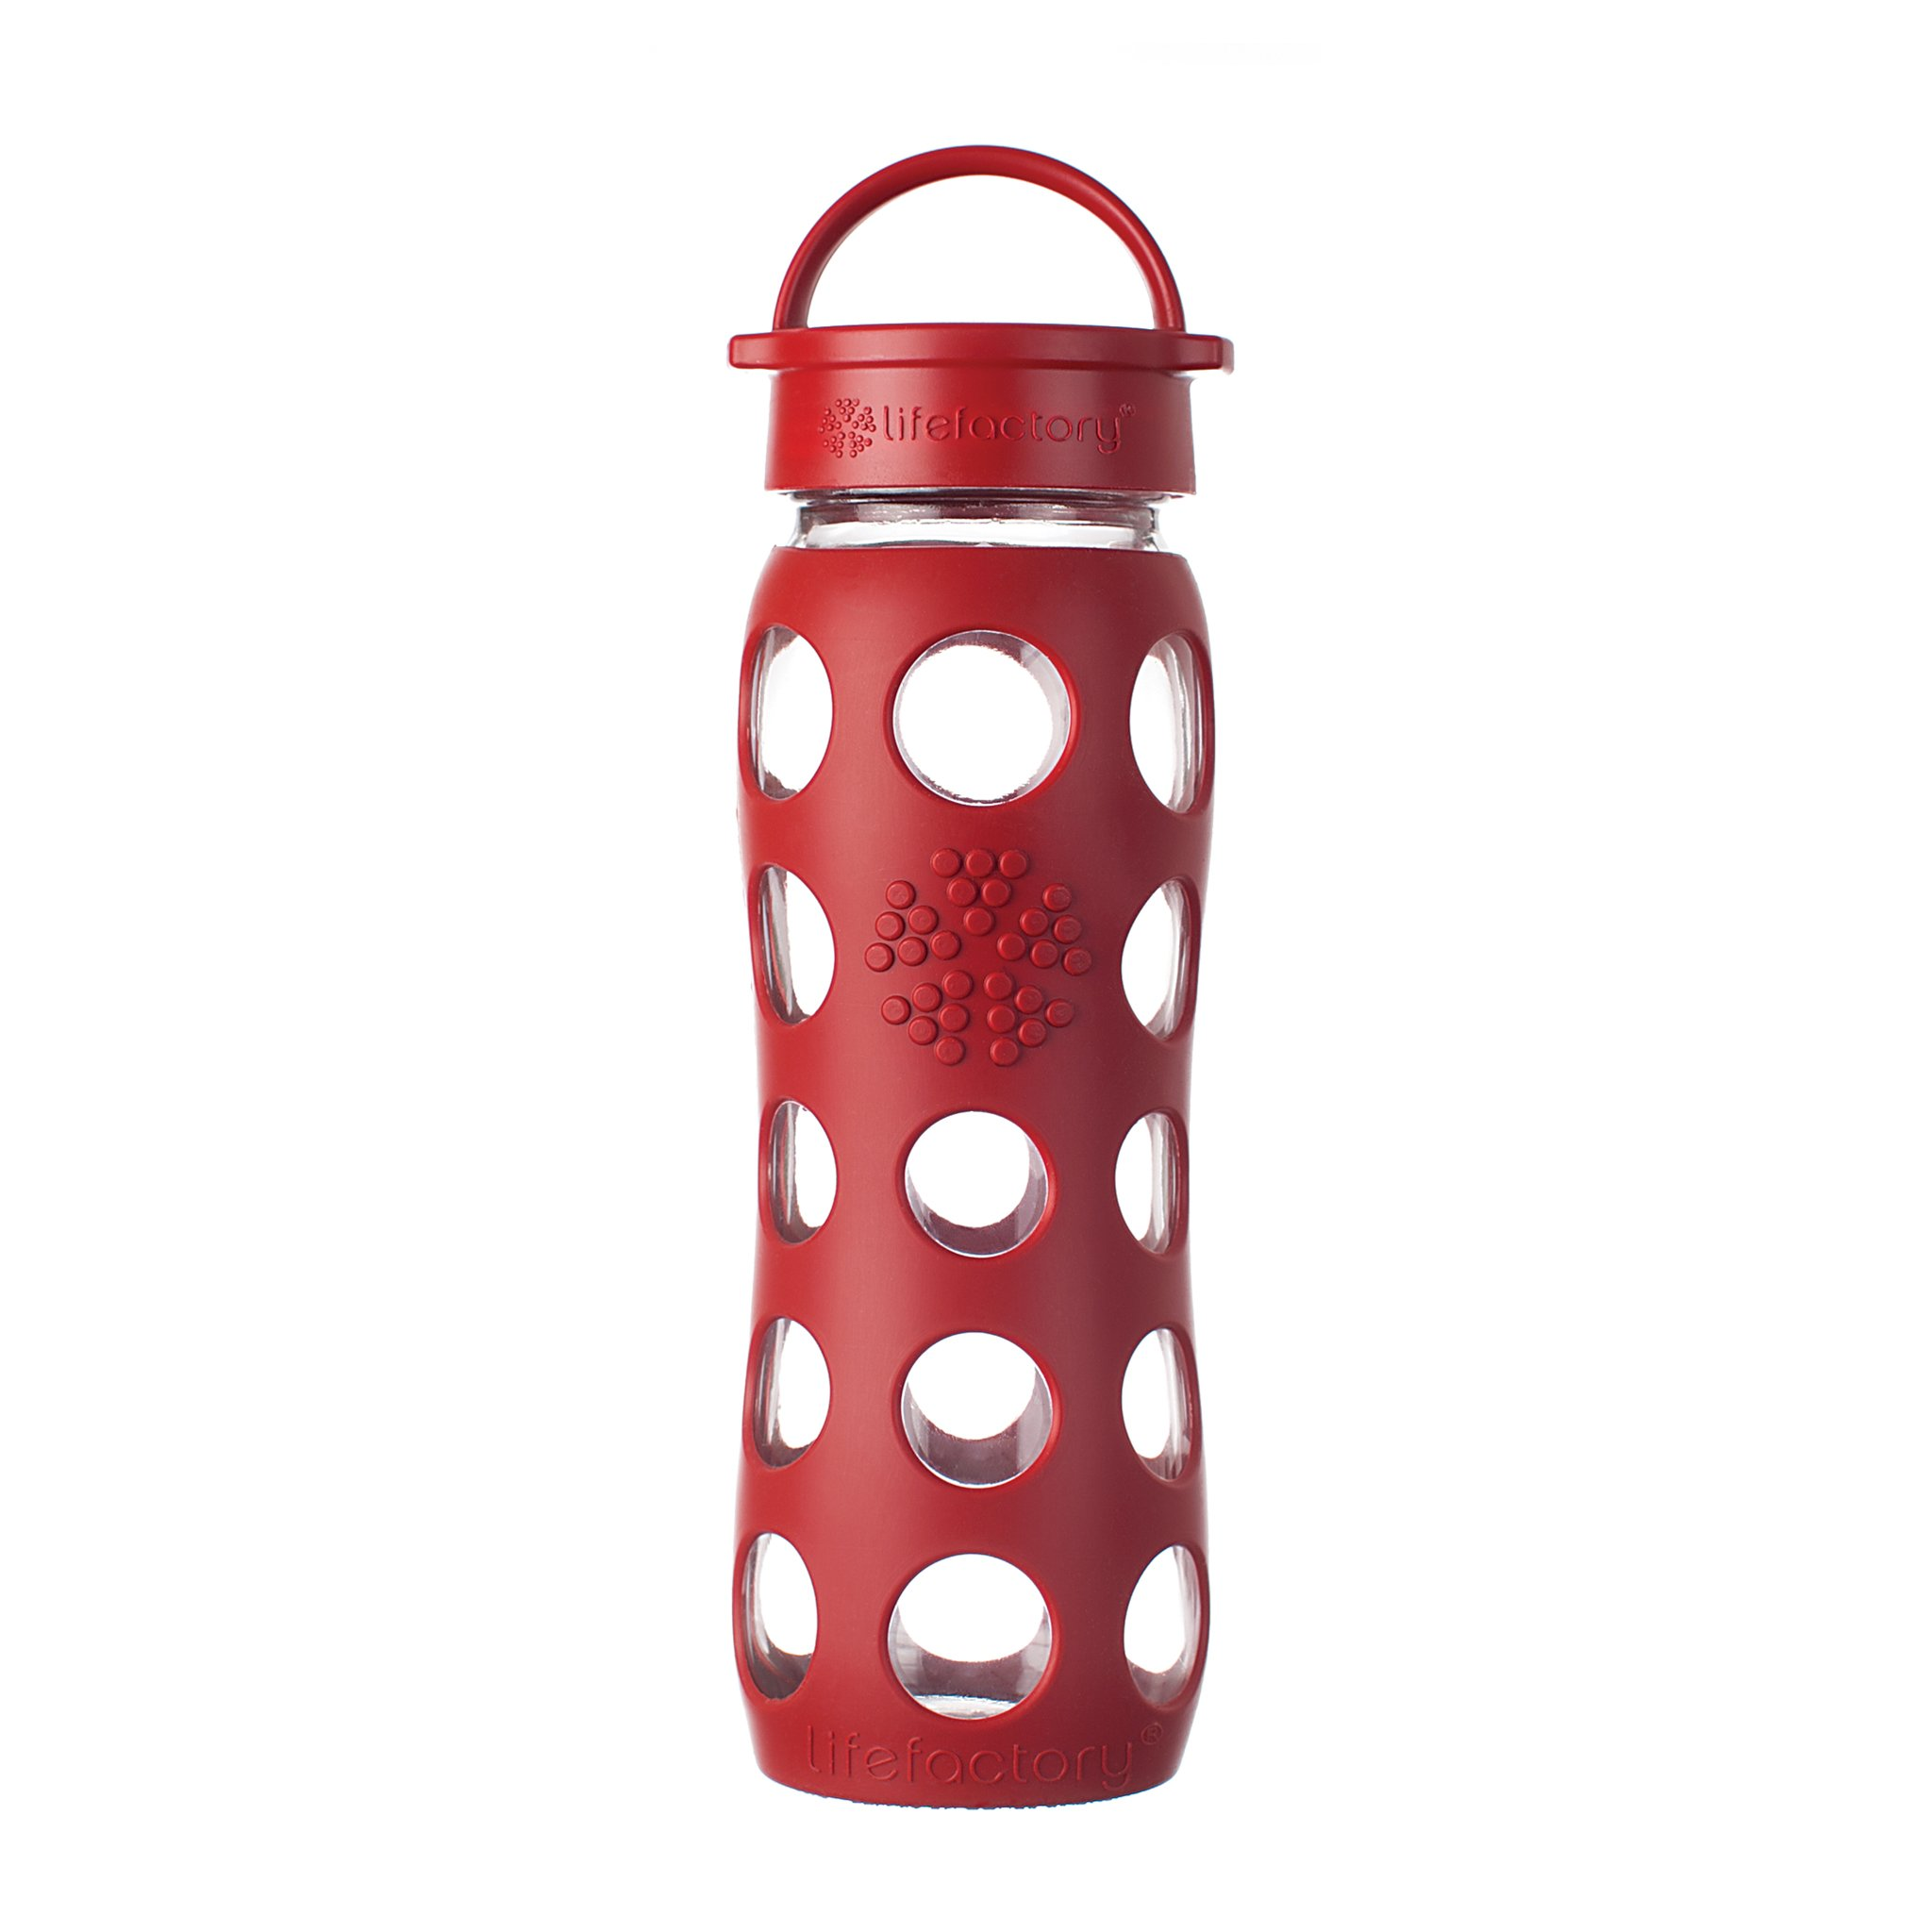 Lifefactory 22-Ounce BPA-Free Glass Water Bottle with Leakproof Cap and Silicone Sleeve, Red